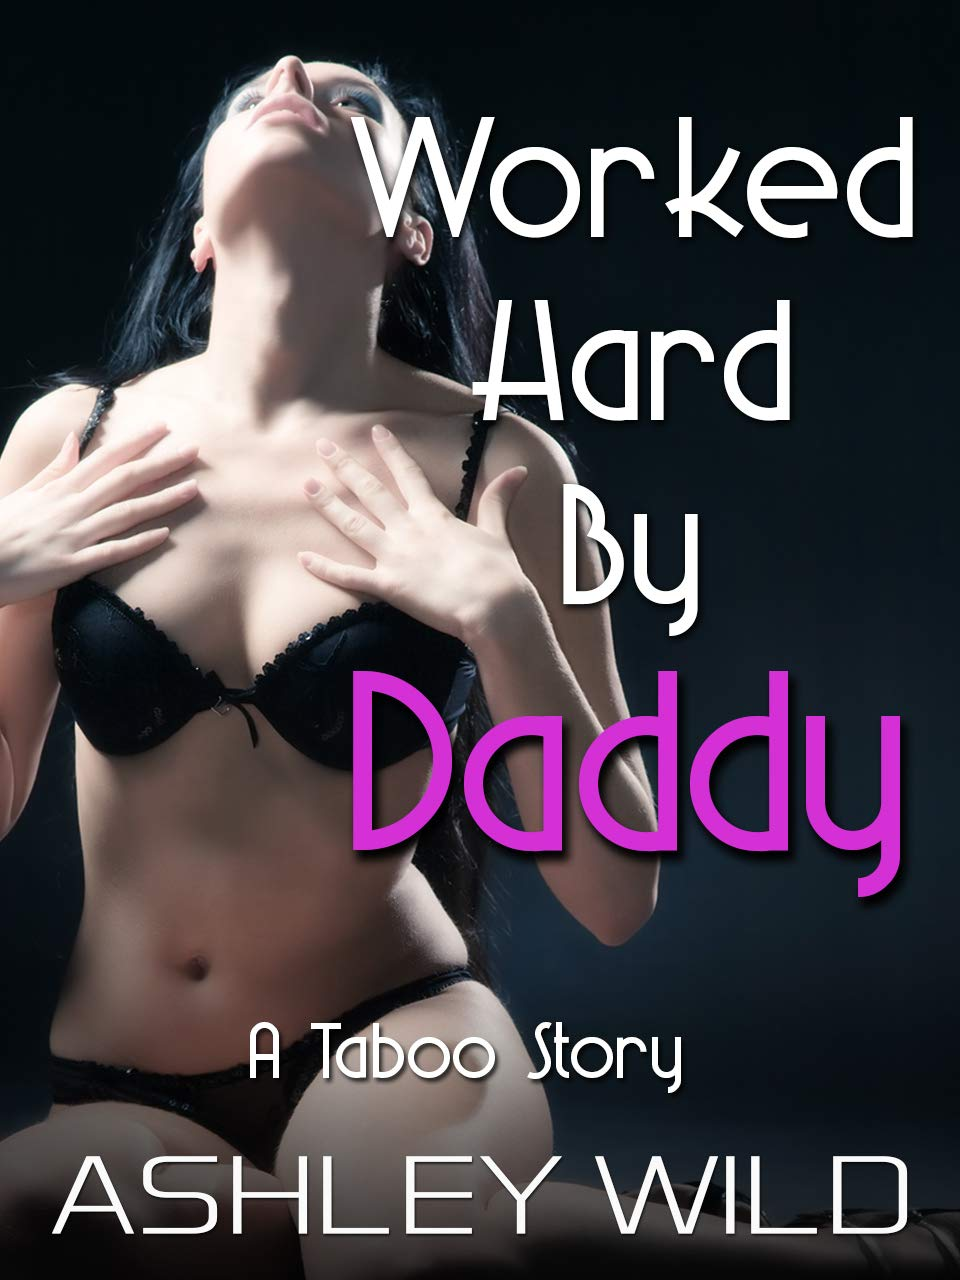 Worked Hard By Daddy: A Taboo Story